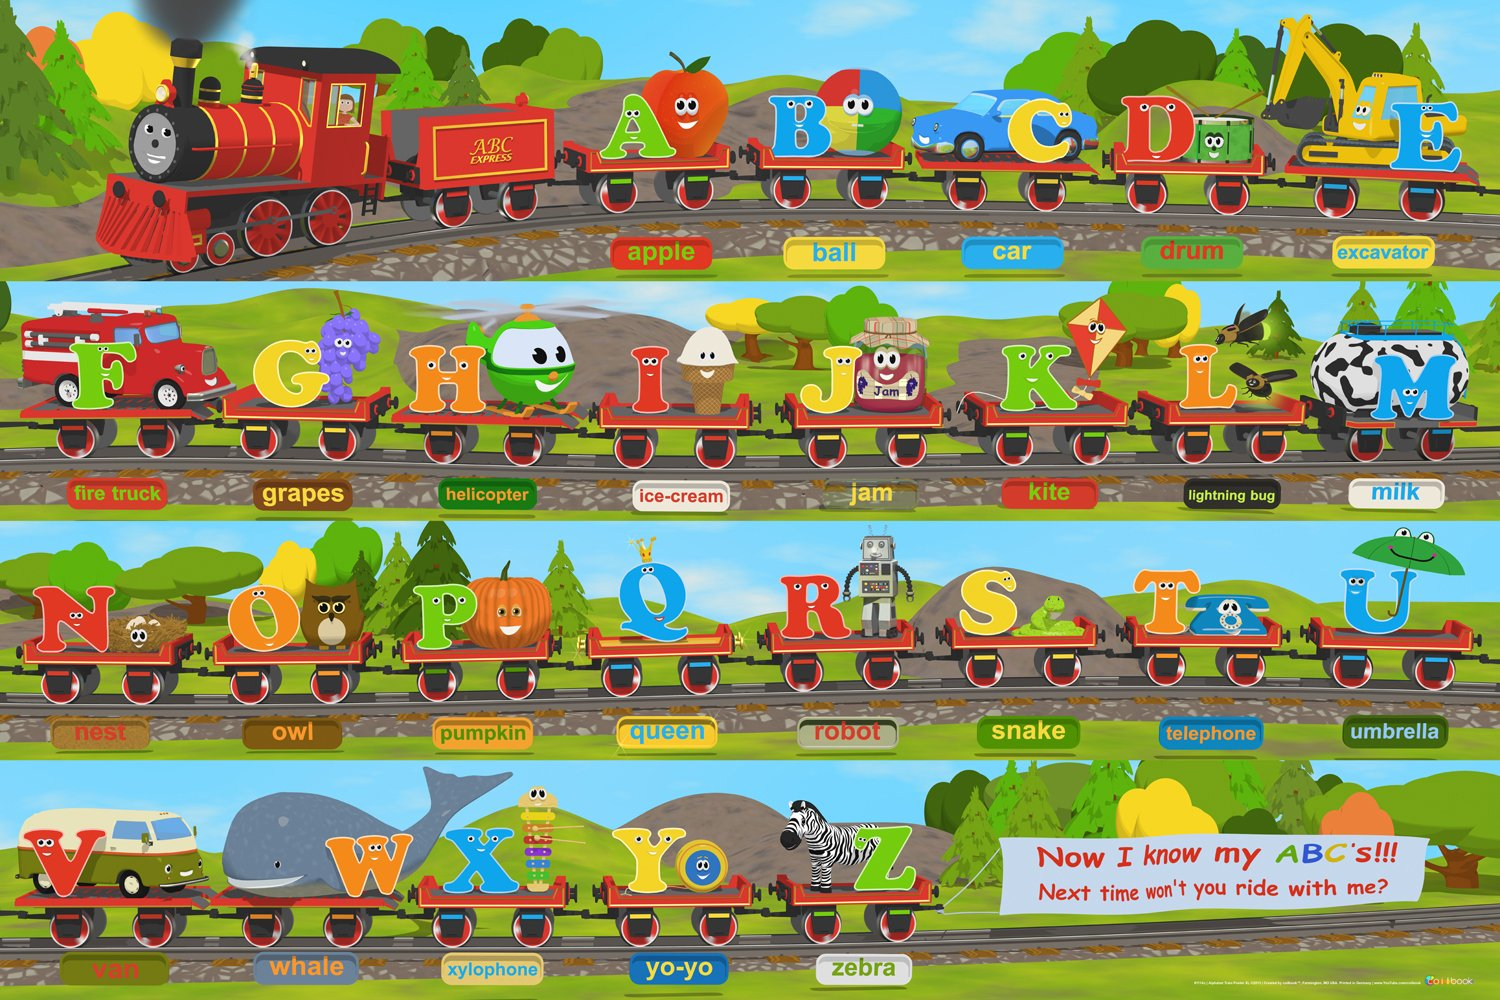 Alphabet Train Poster XL, 36x24, Great Train Theme With Large Letters And Objects!